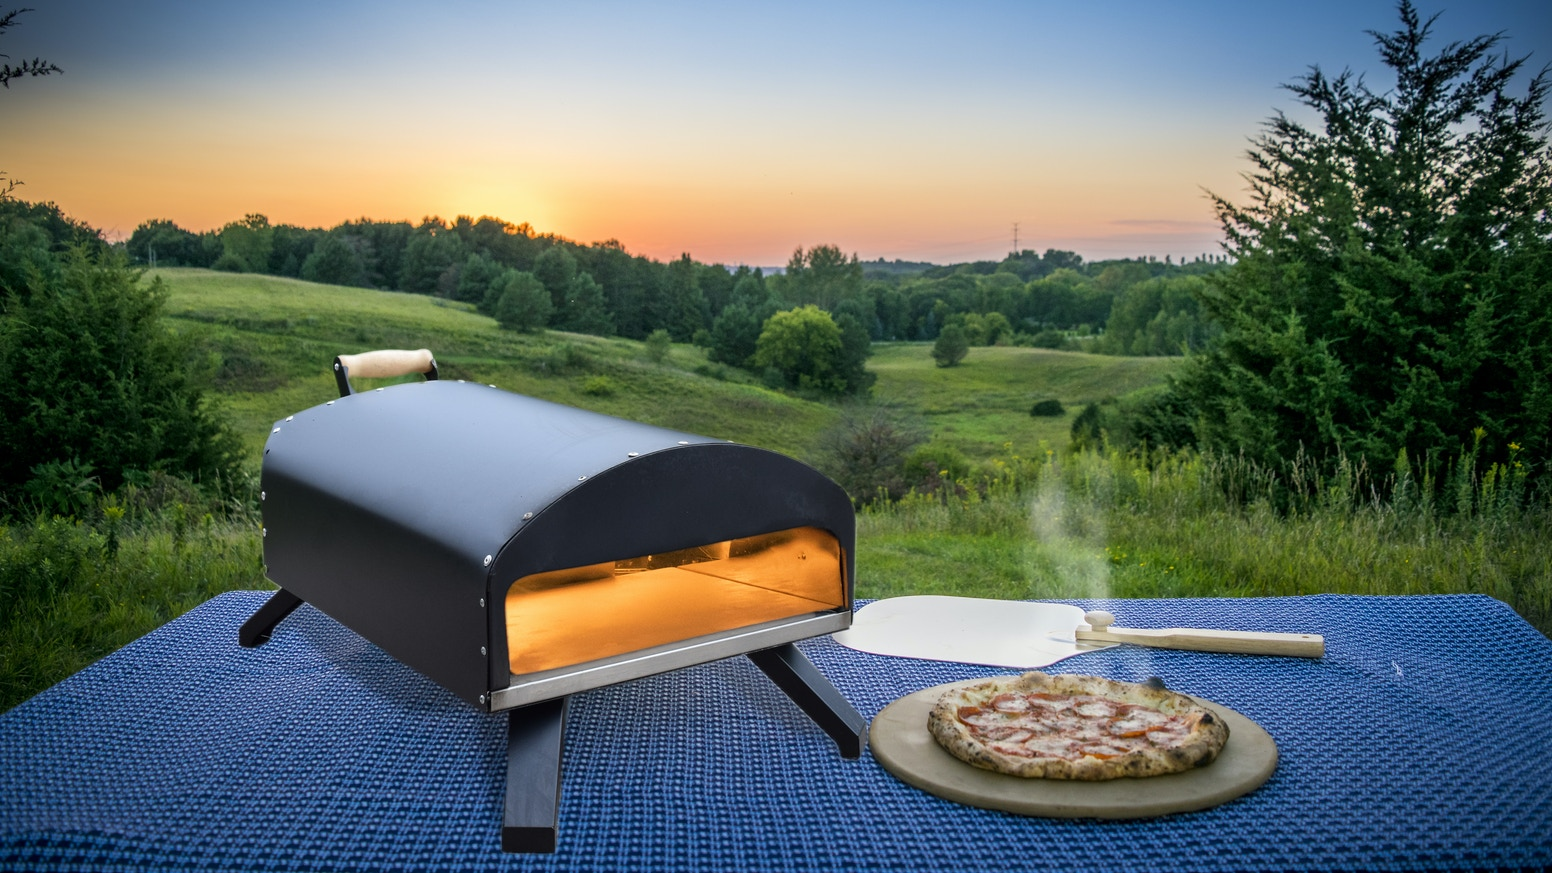 We built an outdoor oven fueled by gas, charcoal or wood. It can cook a Neapolitan style pizza at up to 900 degrees in 90 seconds.